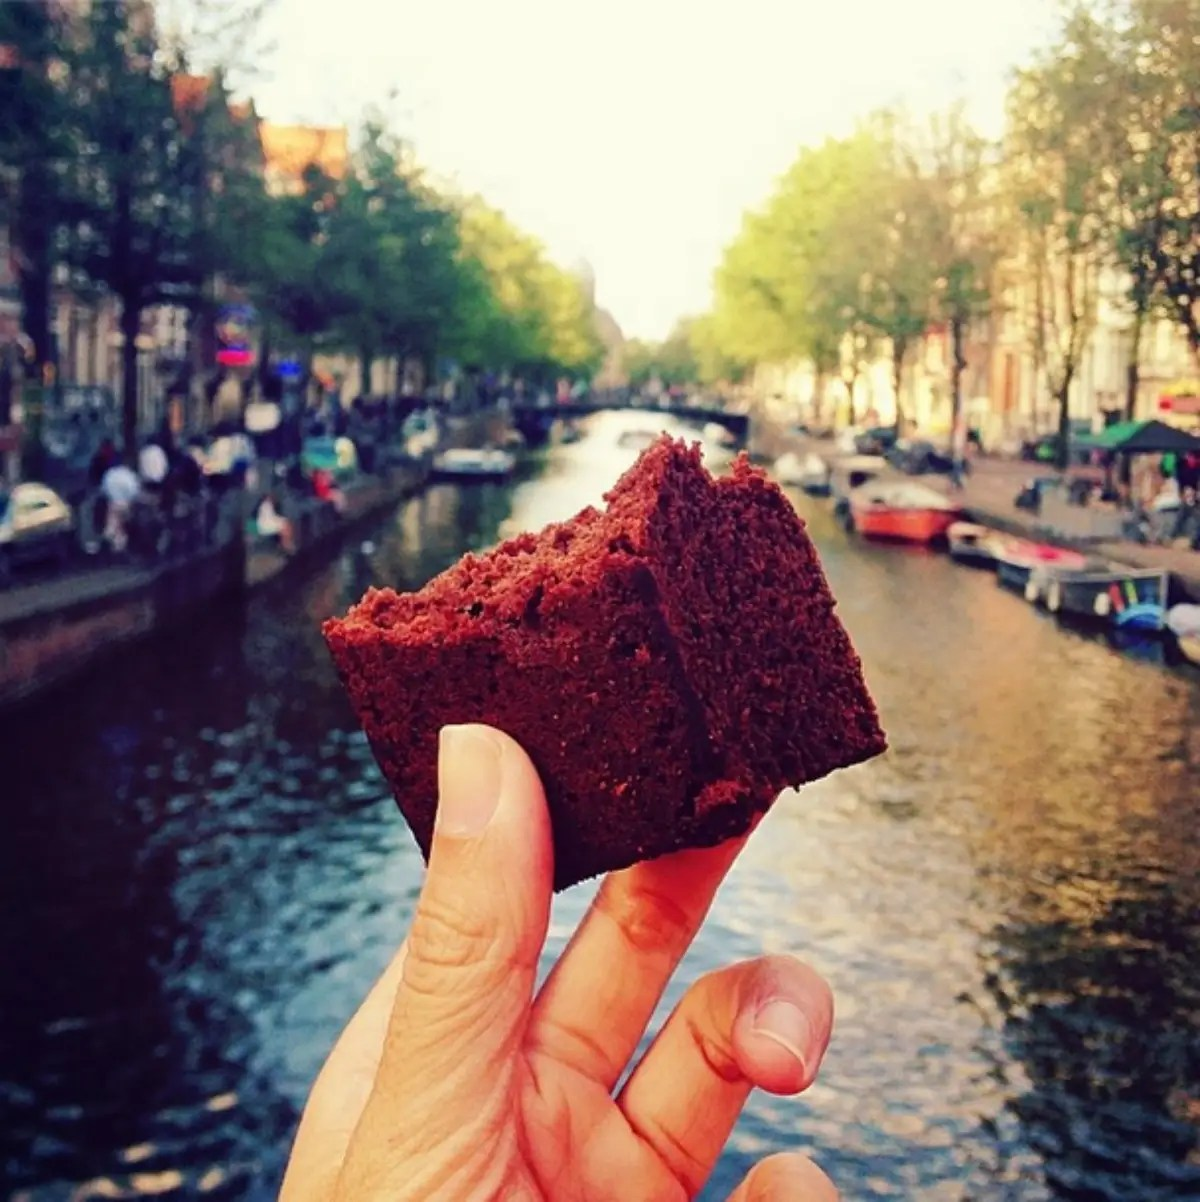 Just a brownie in Amsterdam.